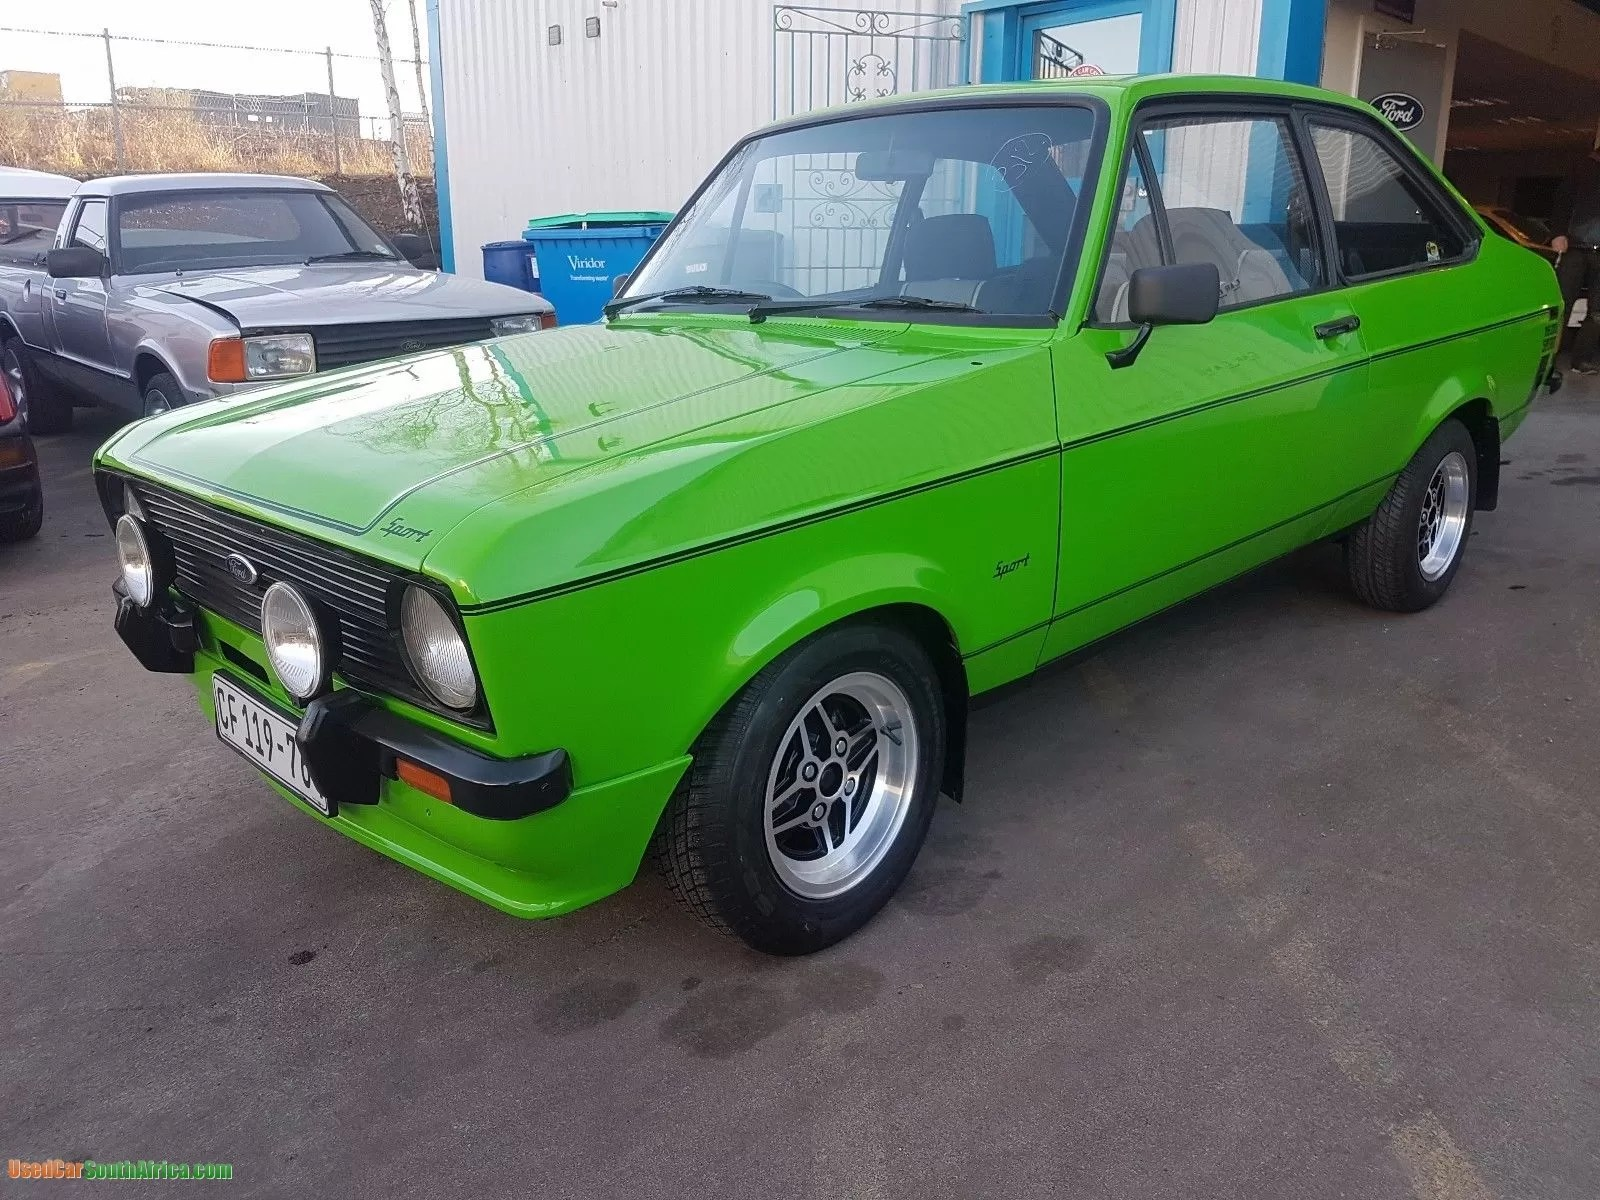 hight resolution of 1977 ford escort 1 6gls used car for sale in bronkhorstspruit gauteng south africa usedcarsouthafrica com 0